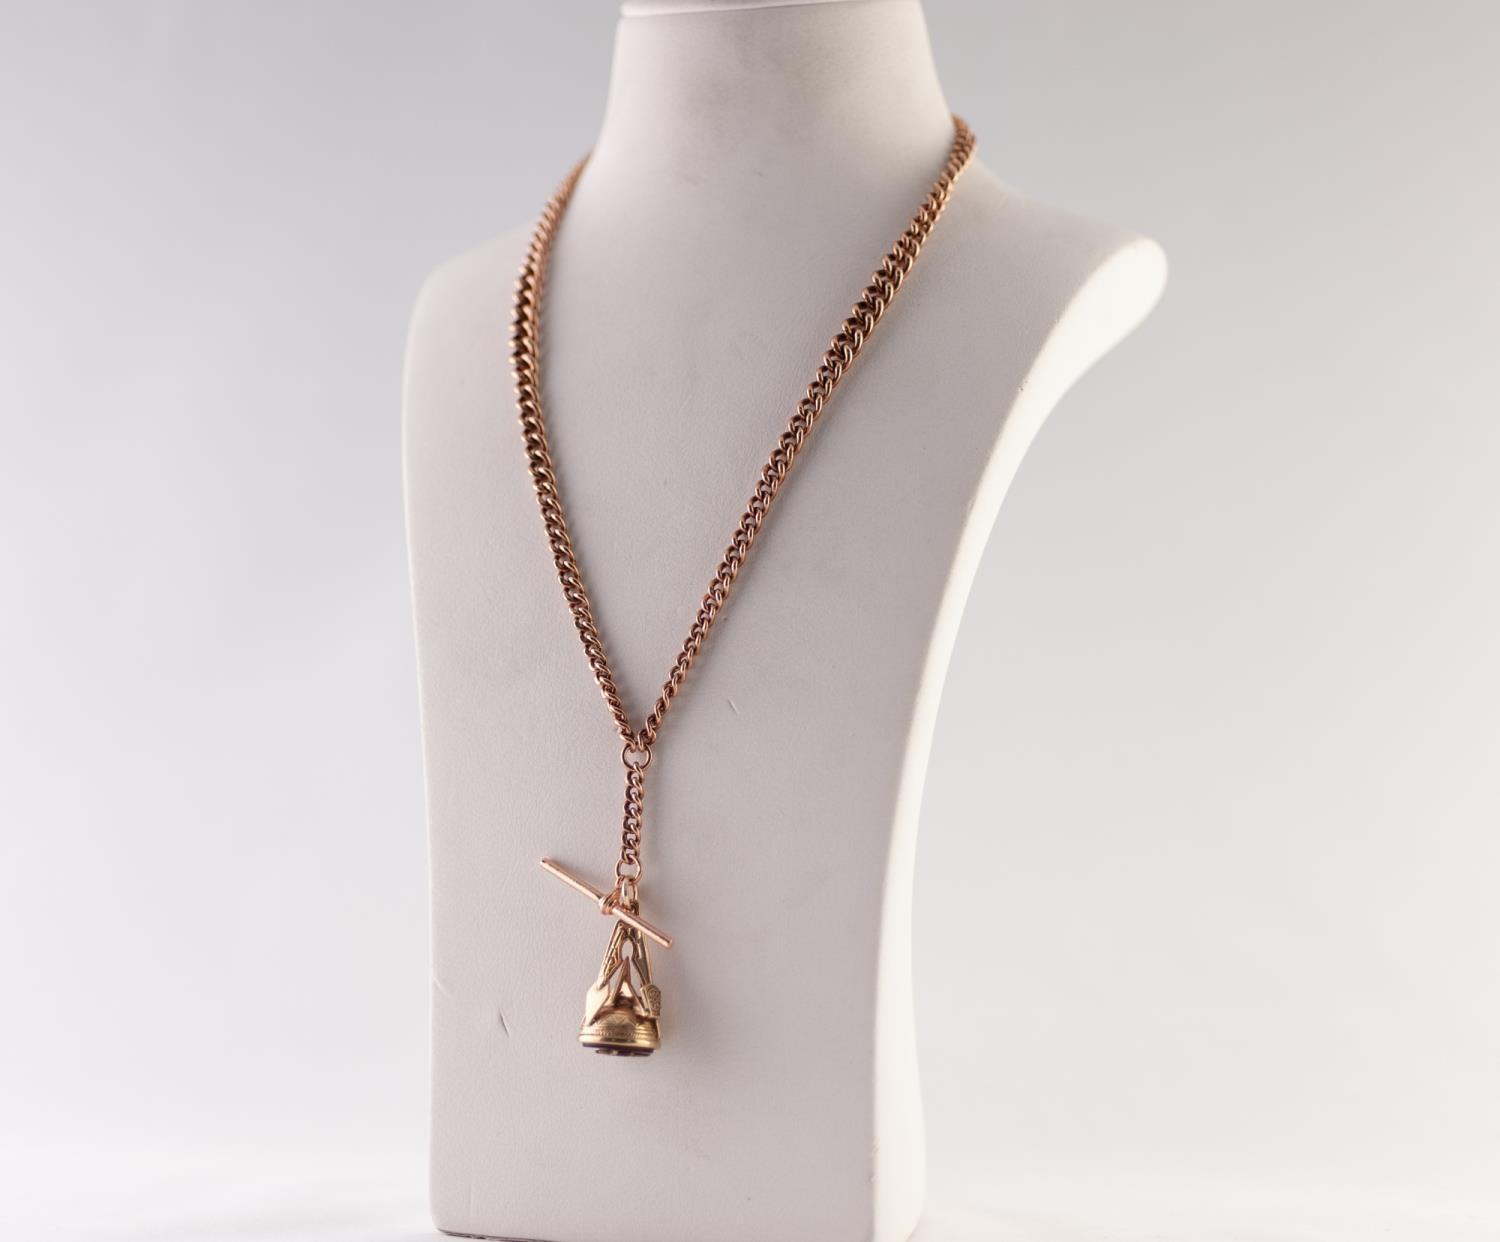 Lot 199 - GRADUATED CURB LINK ALBERT CHAIN, with T-BAR and clip, stamped '9CT', length 47cm, WITH A